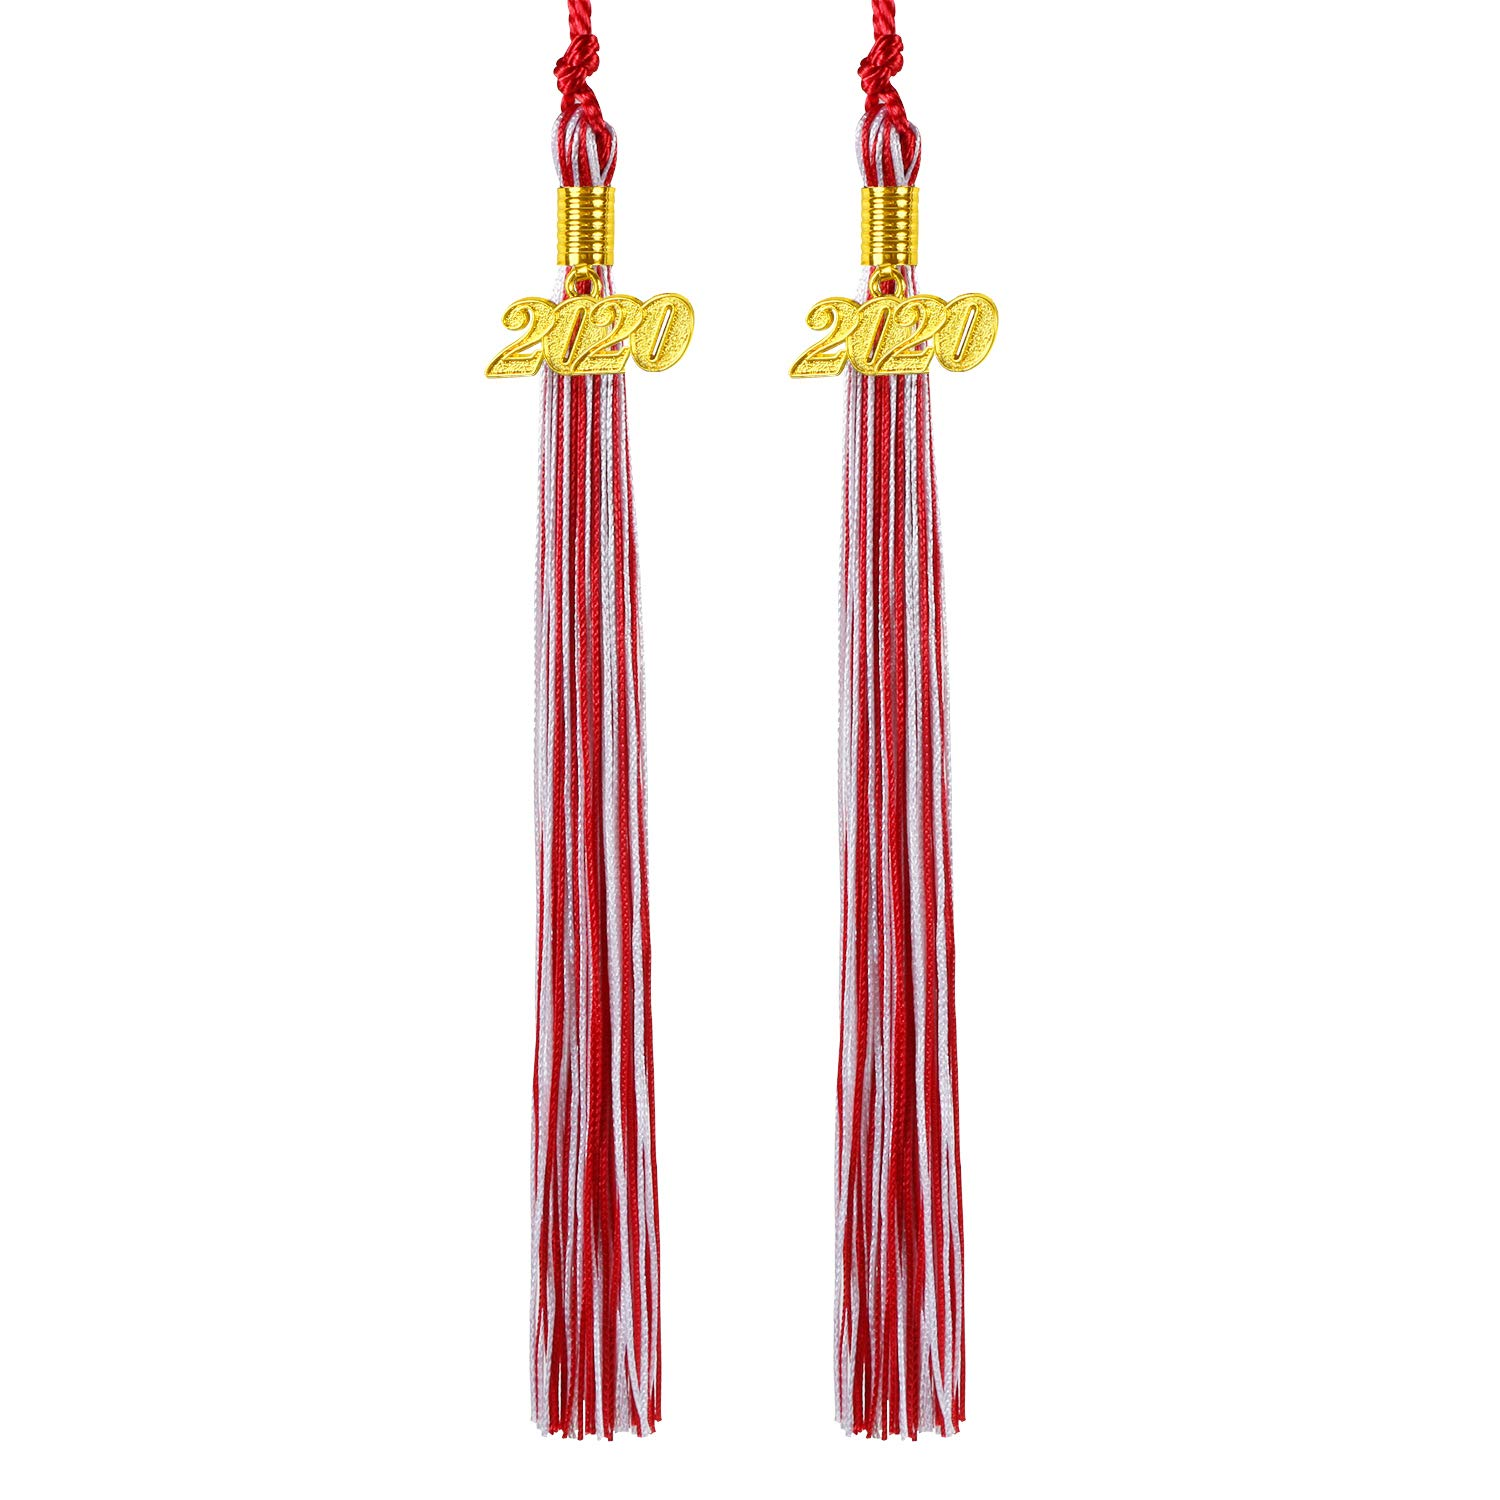 Kissbuty Uniforms Graduation Tassel with 2020 Gold Year Charm for Graduation Photography Party Double Color 2 Pcs 2020 Graduation Cap Tassel Red and White